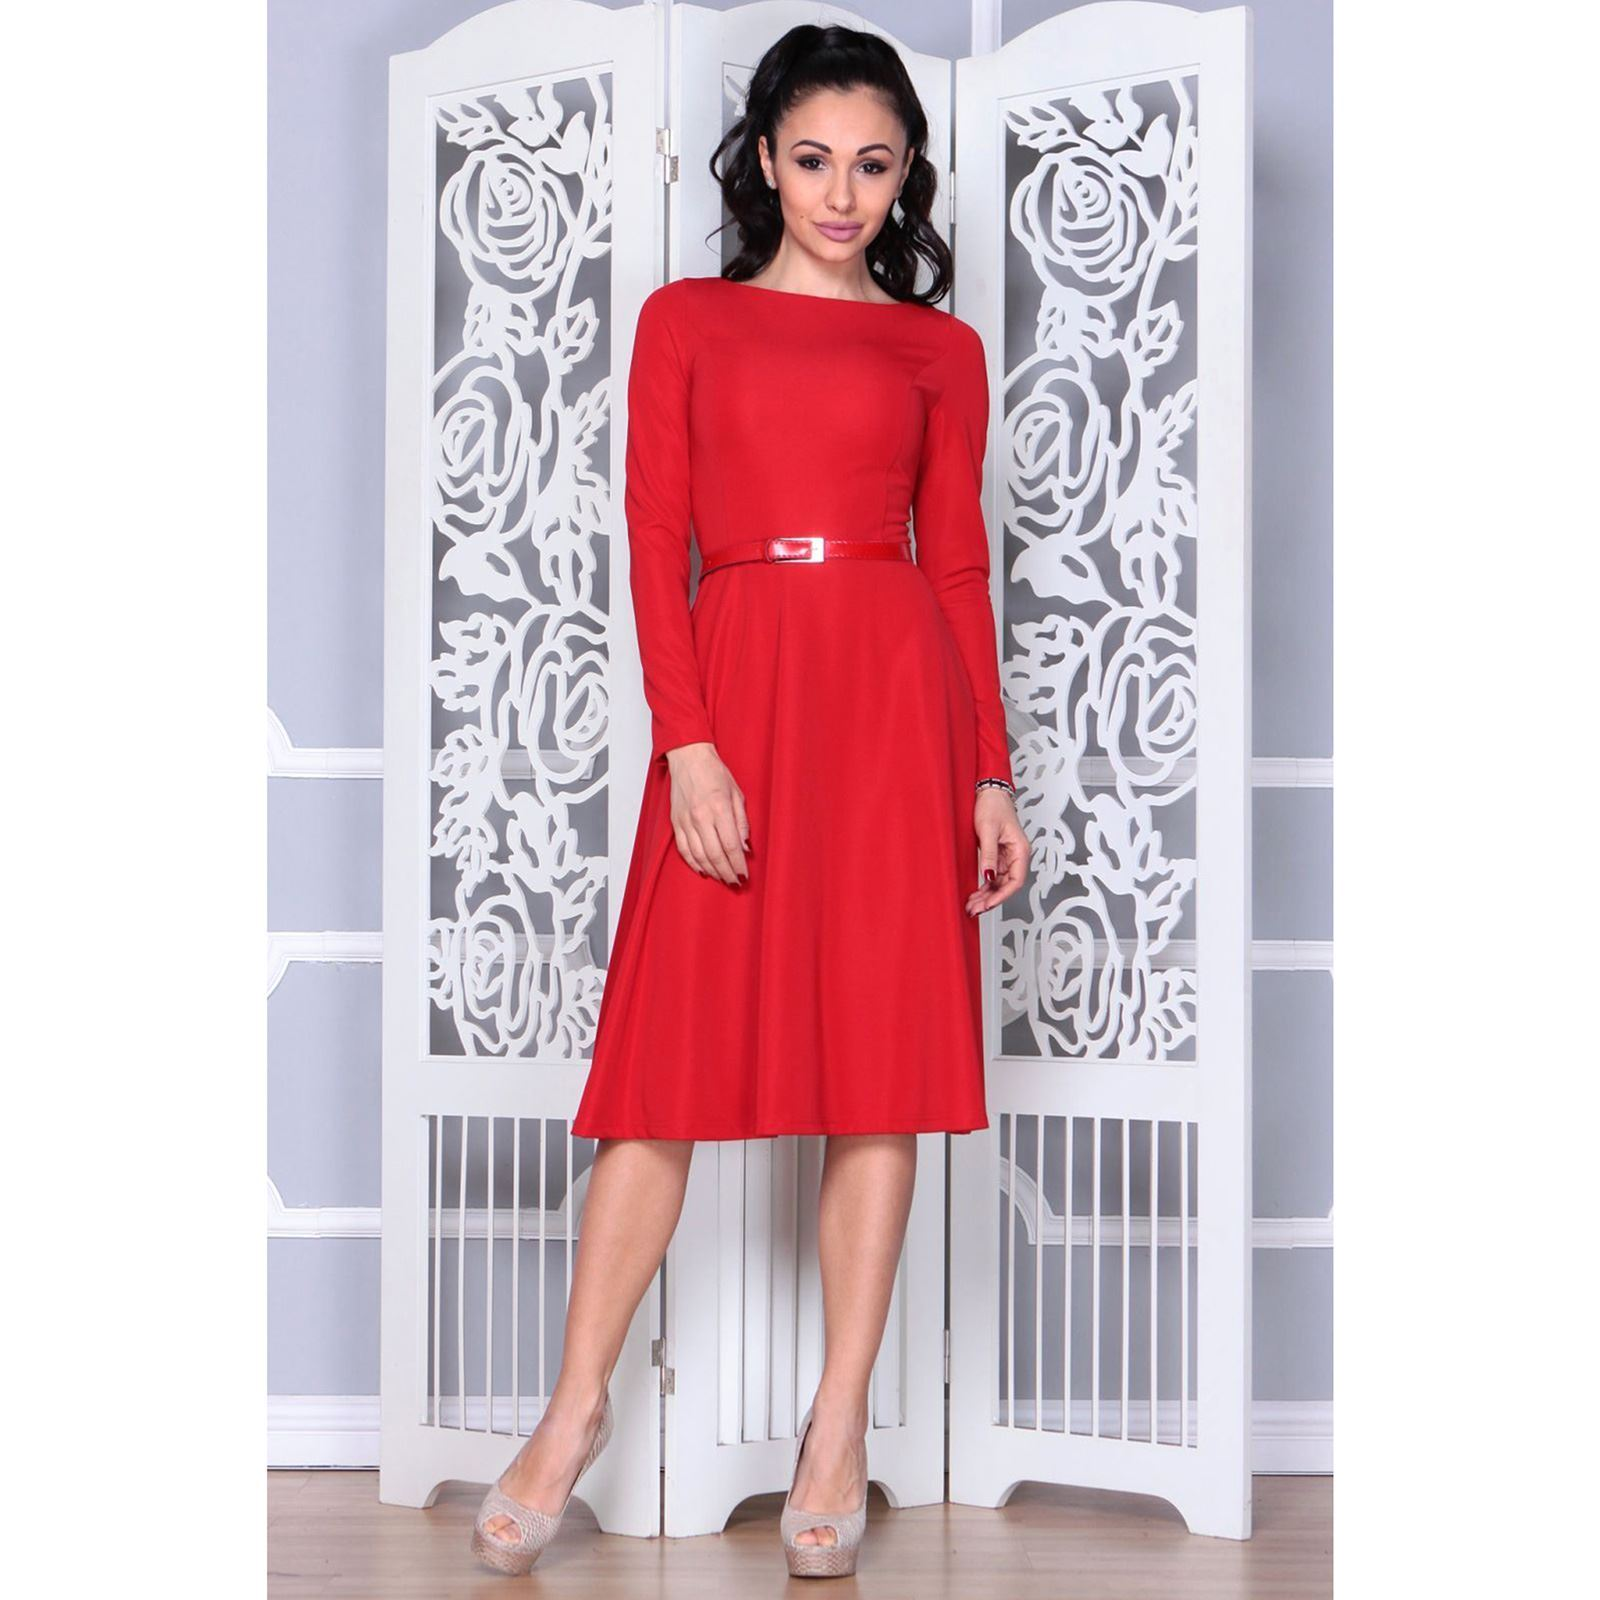 buy online eafb6 13c76 Laura Bettini Vestito da cerimonia - rosso | BrandAlley